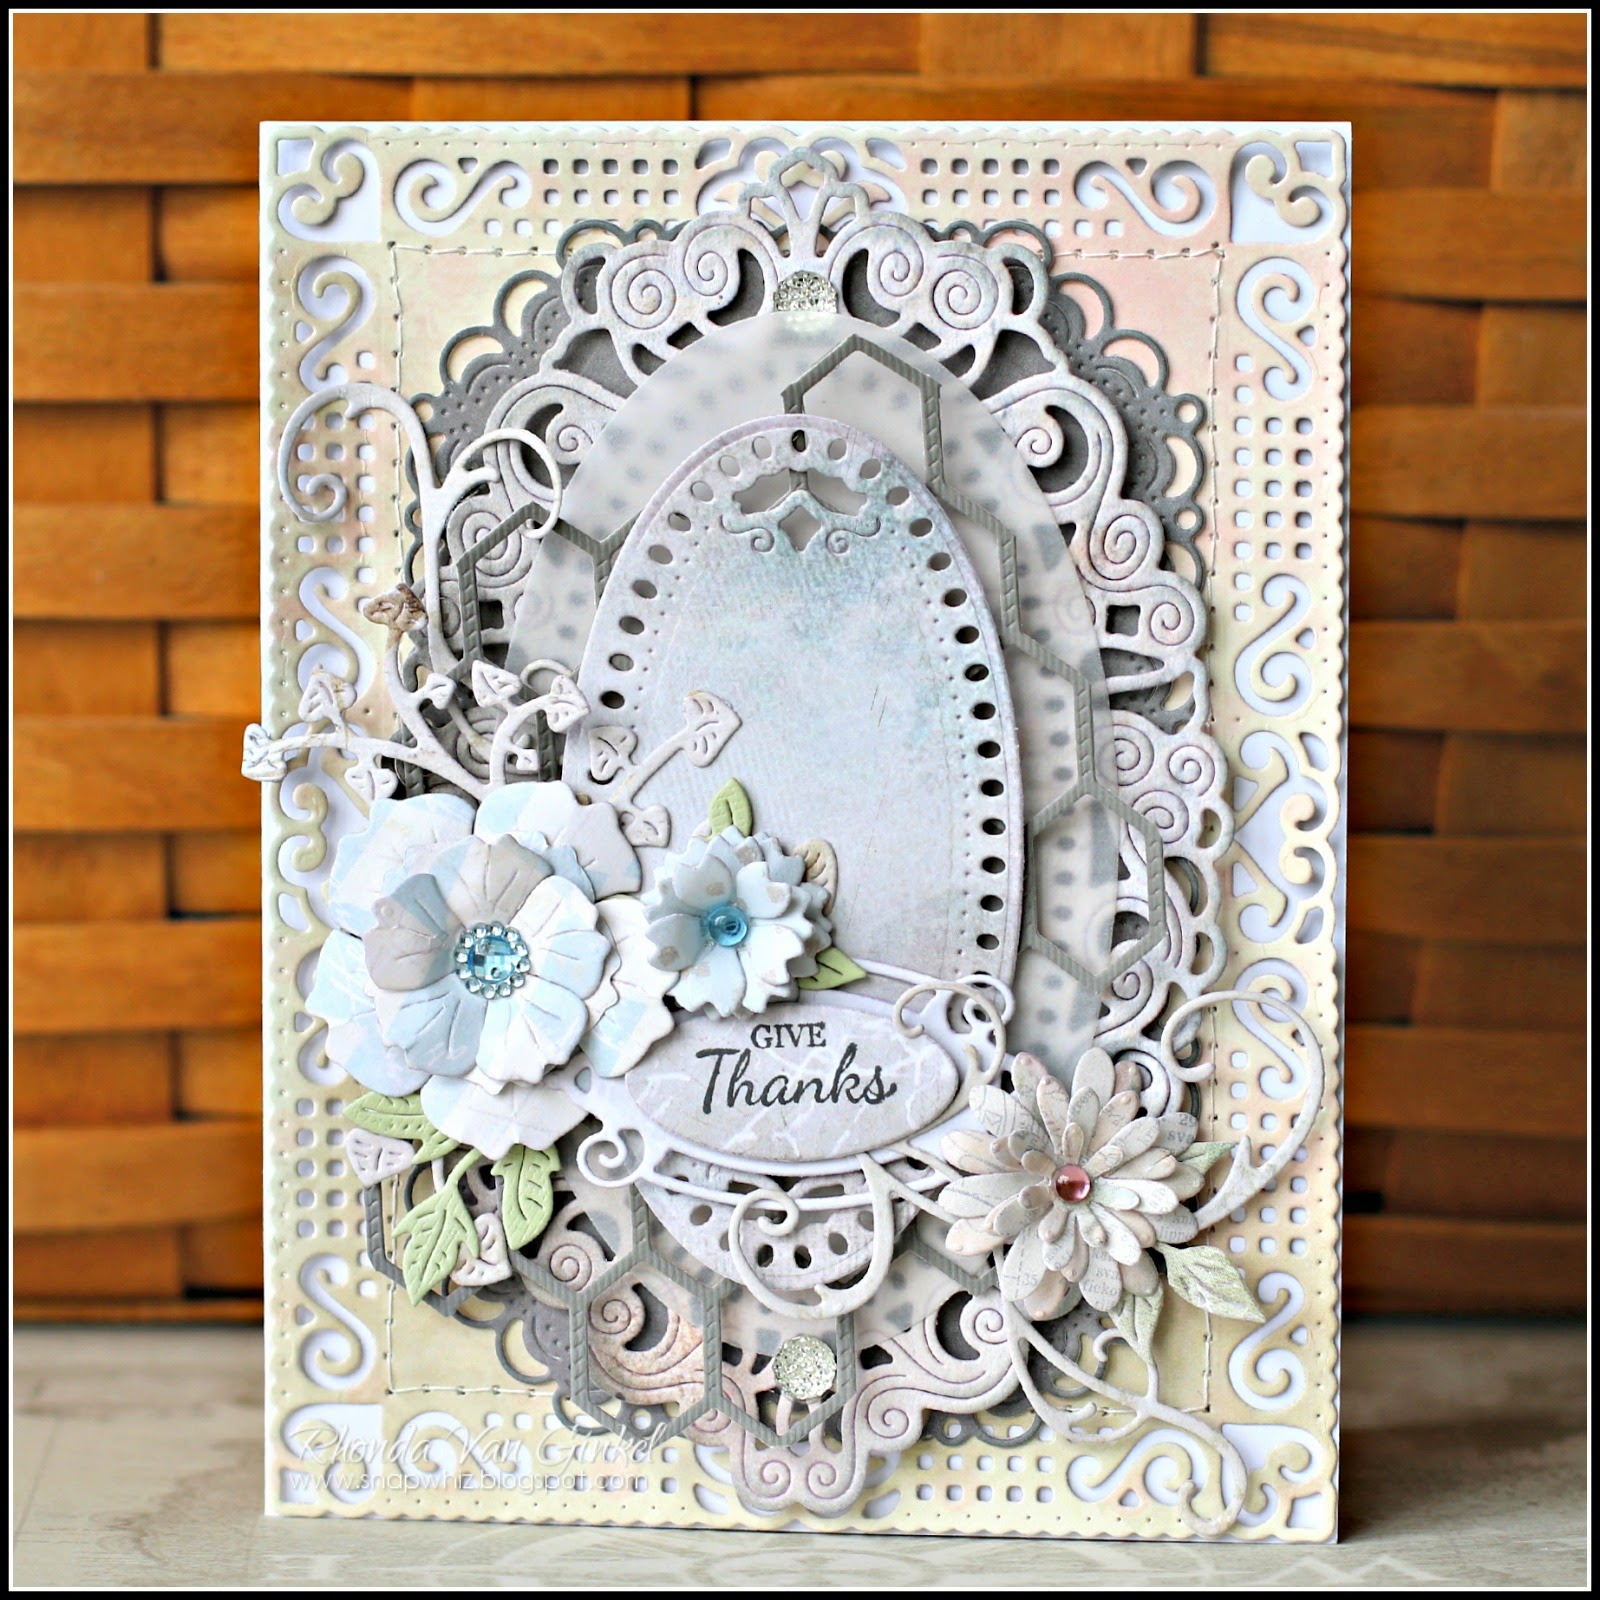 Give Thanks card featuring Cheery Lynn Designs Dies by Rhonda Van Ginkel